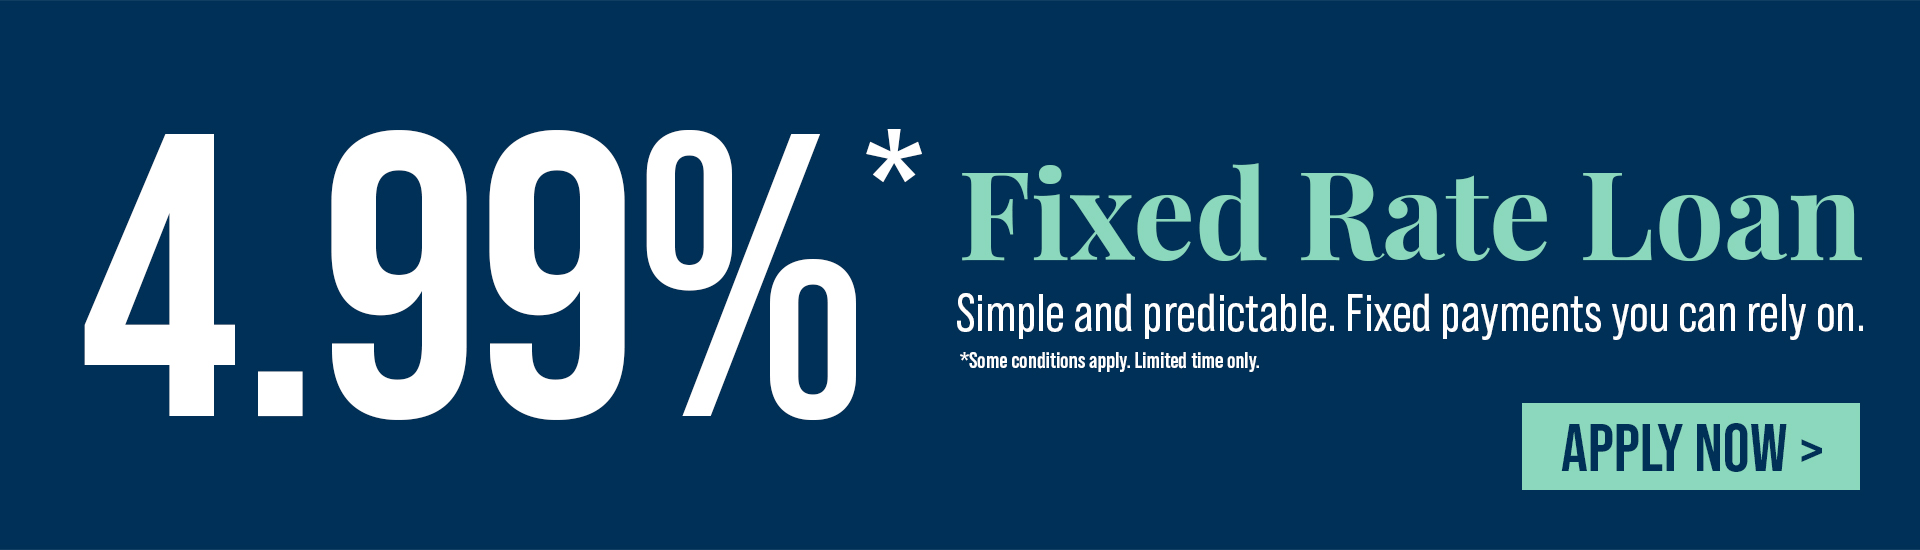 4.99%* Fixed Rate Loan *Some conditions apply. For A Limited Time Only!